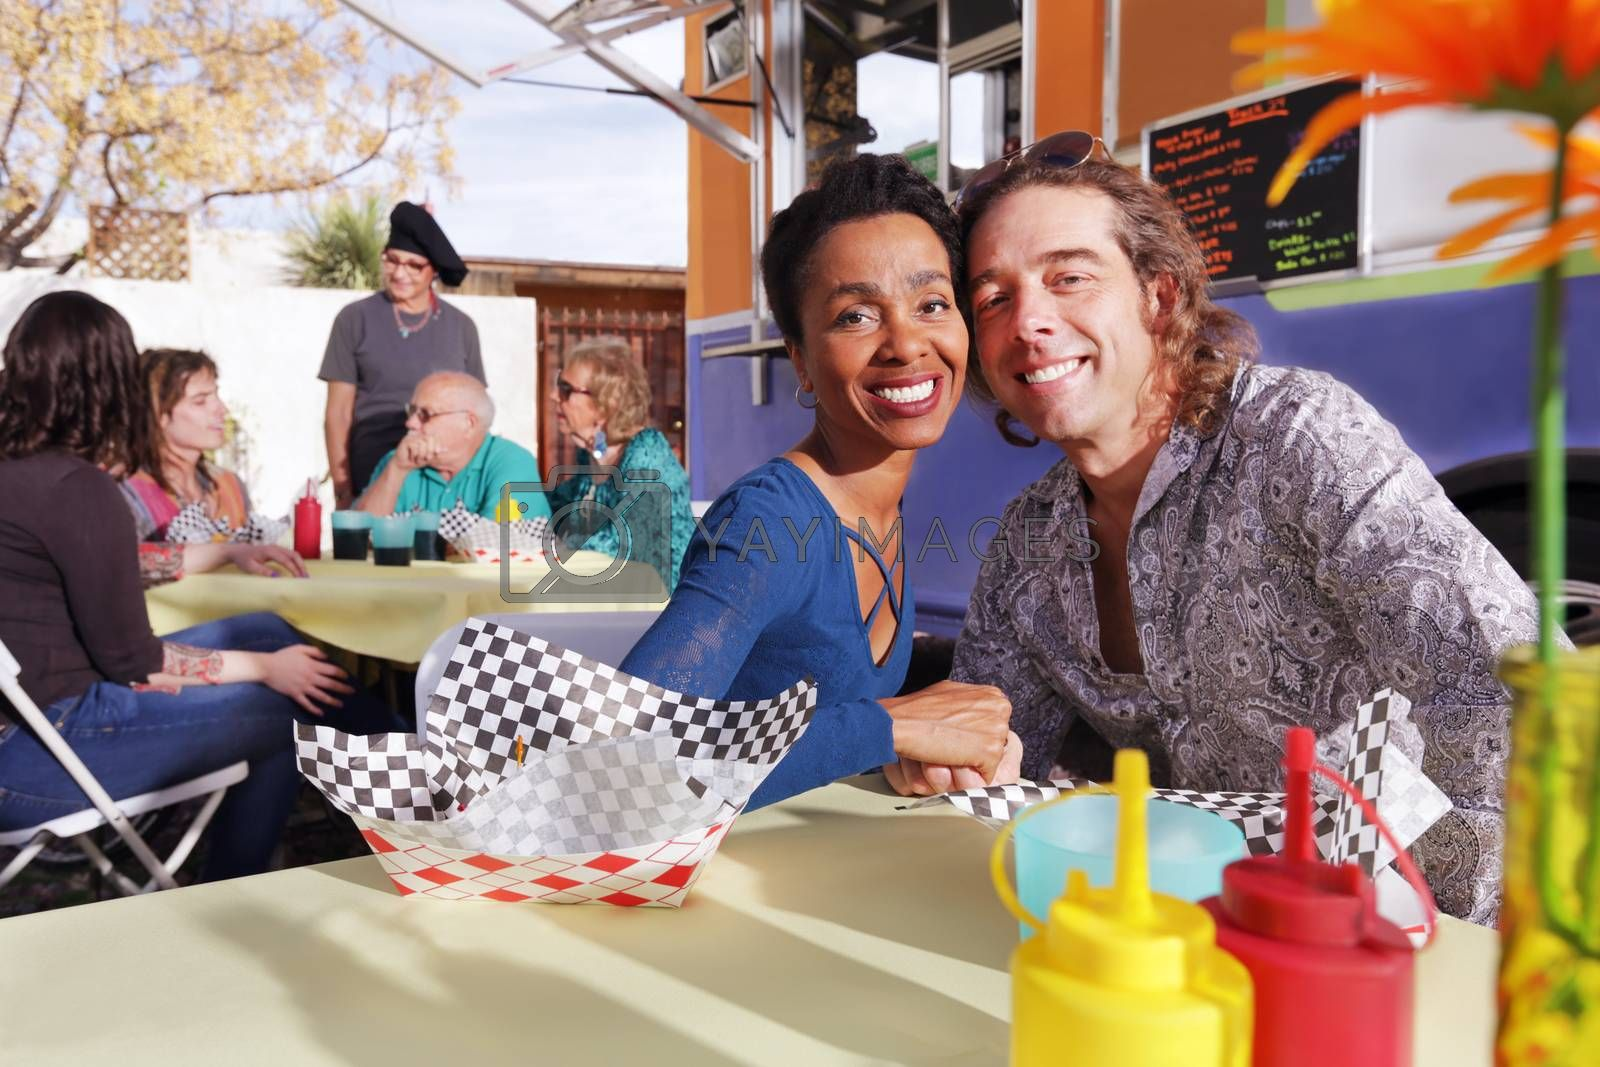 Handsome diverse couple smiles at camera while seated at an outdoor table beside a food truck